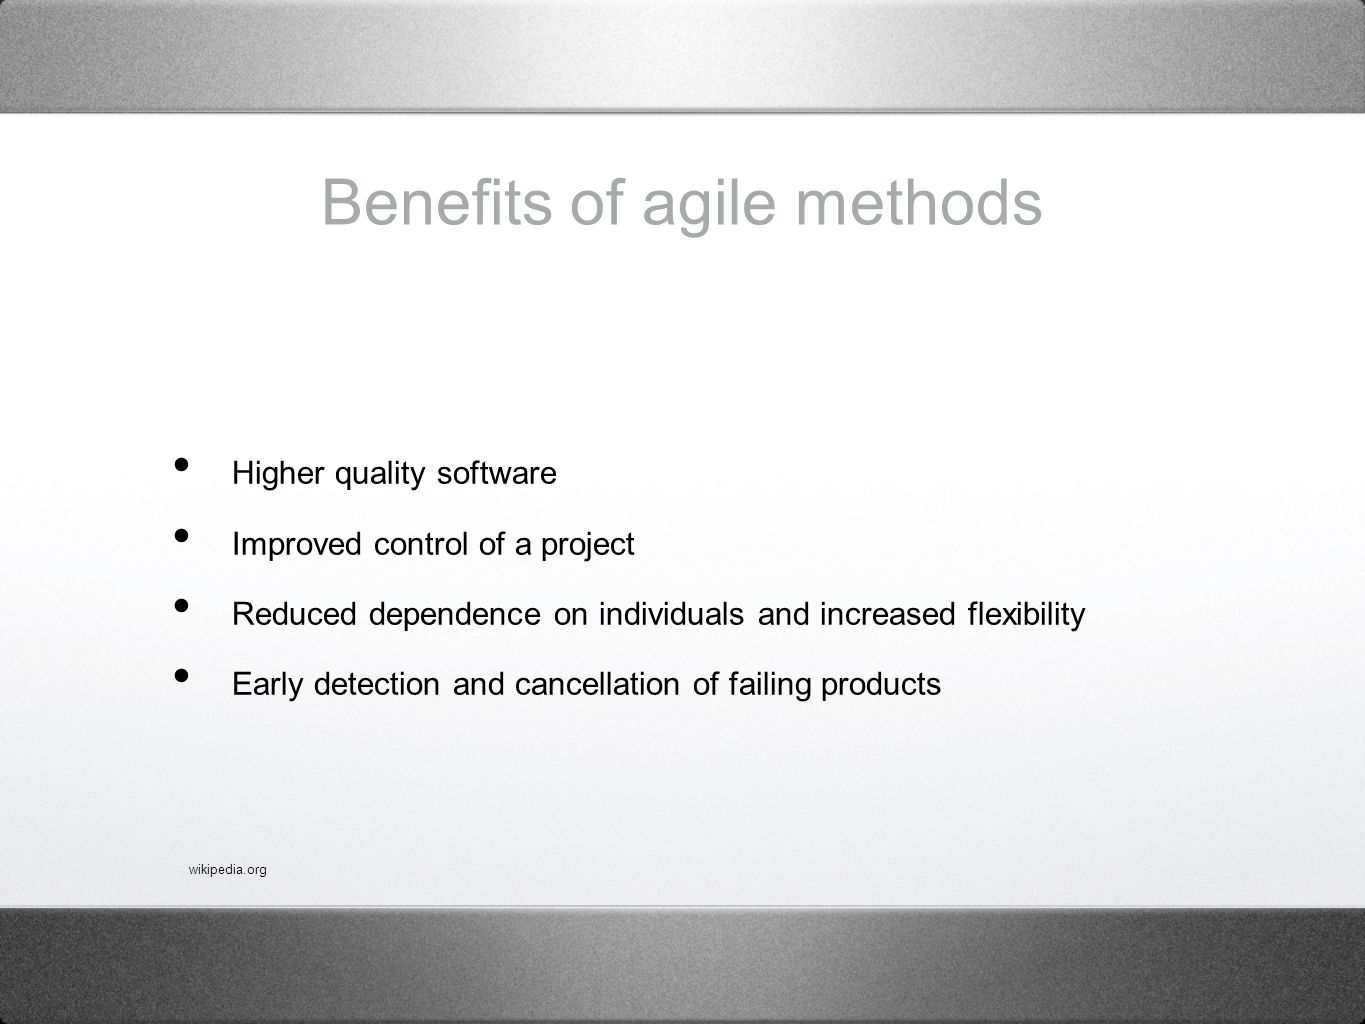 Benefits of agile methods Higher quality software Improved control of a project Reduced dependence on individuals and increased flexibility Early detection and cancellation of failing products wikipedia.org